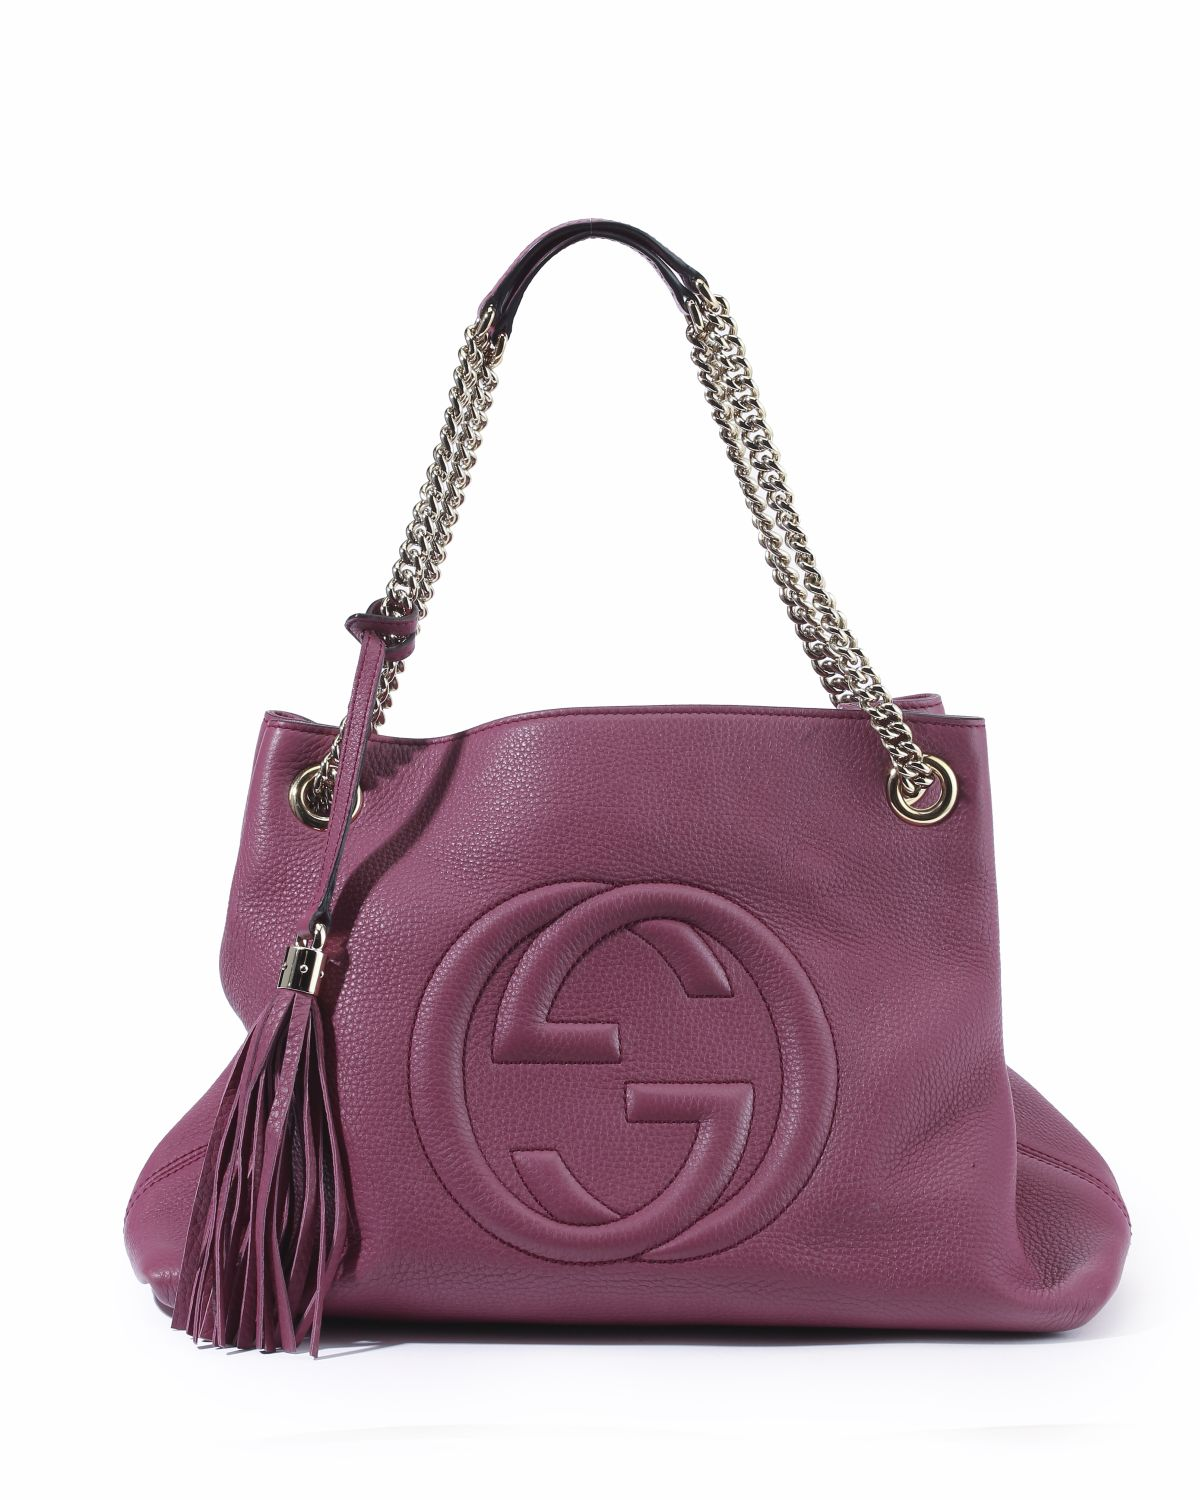 A Gucci Soho chain shoulder bag